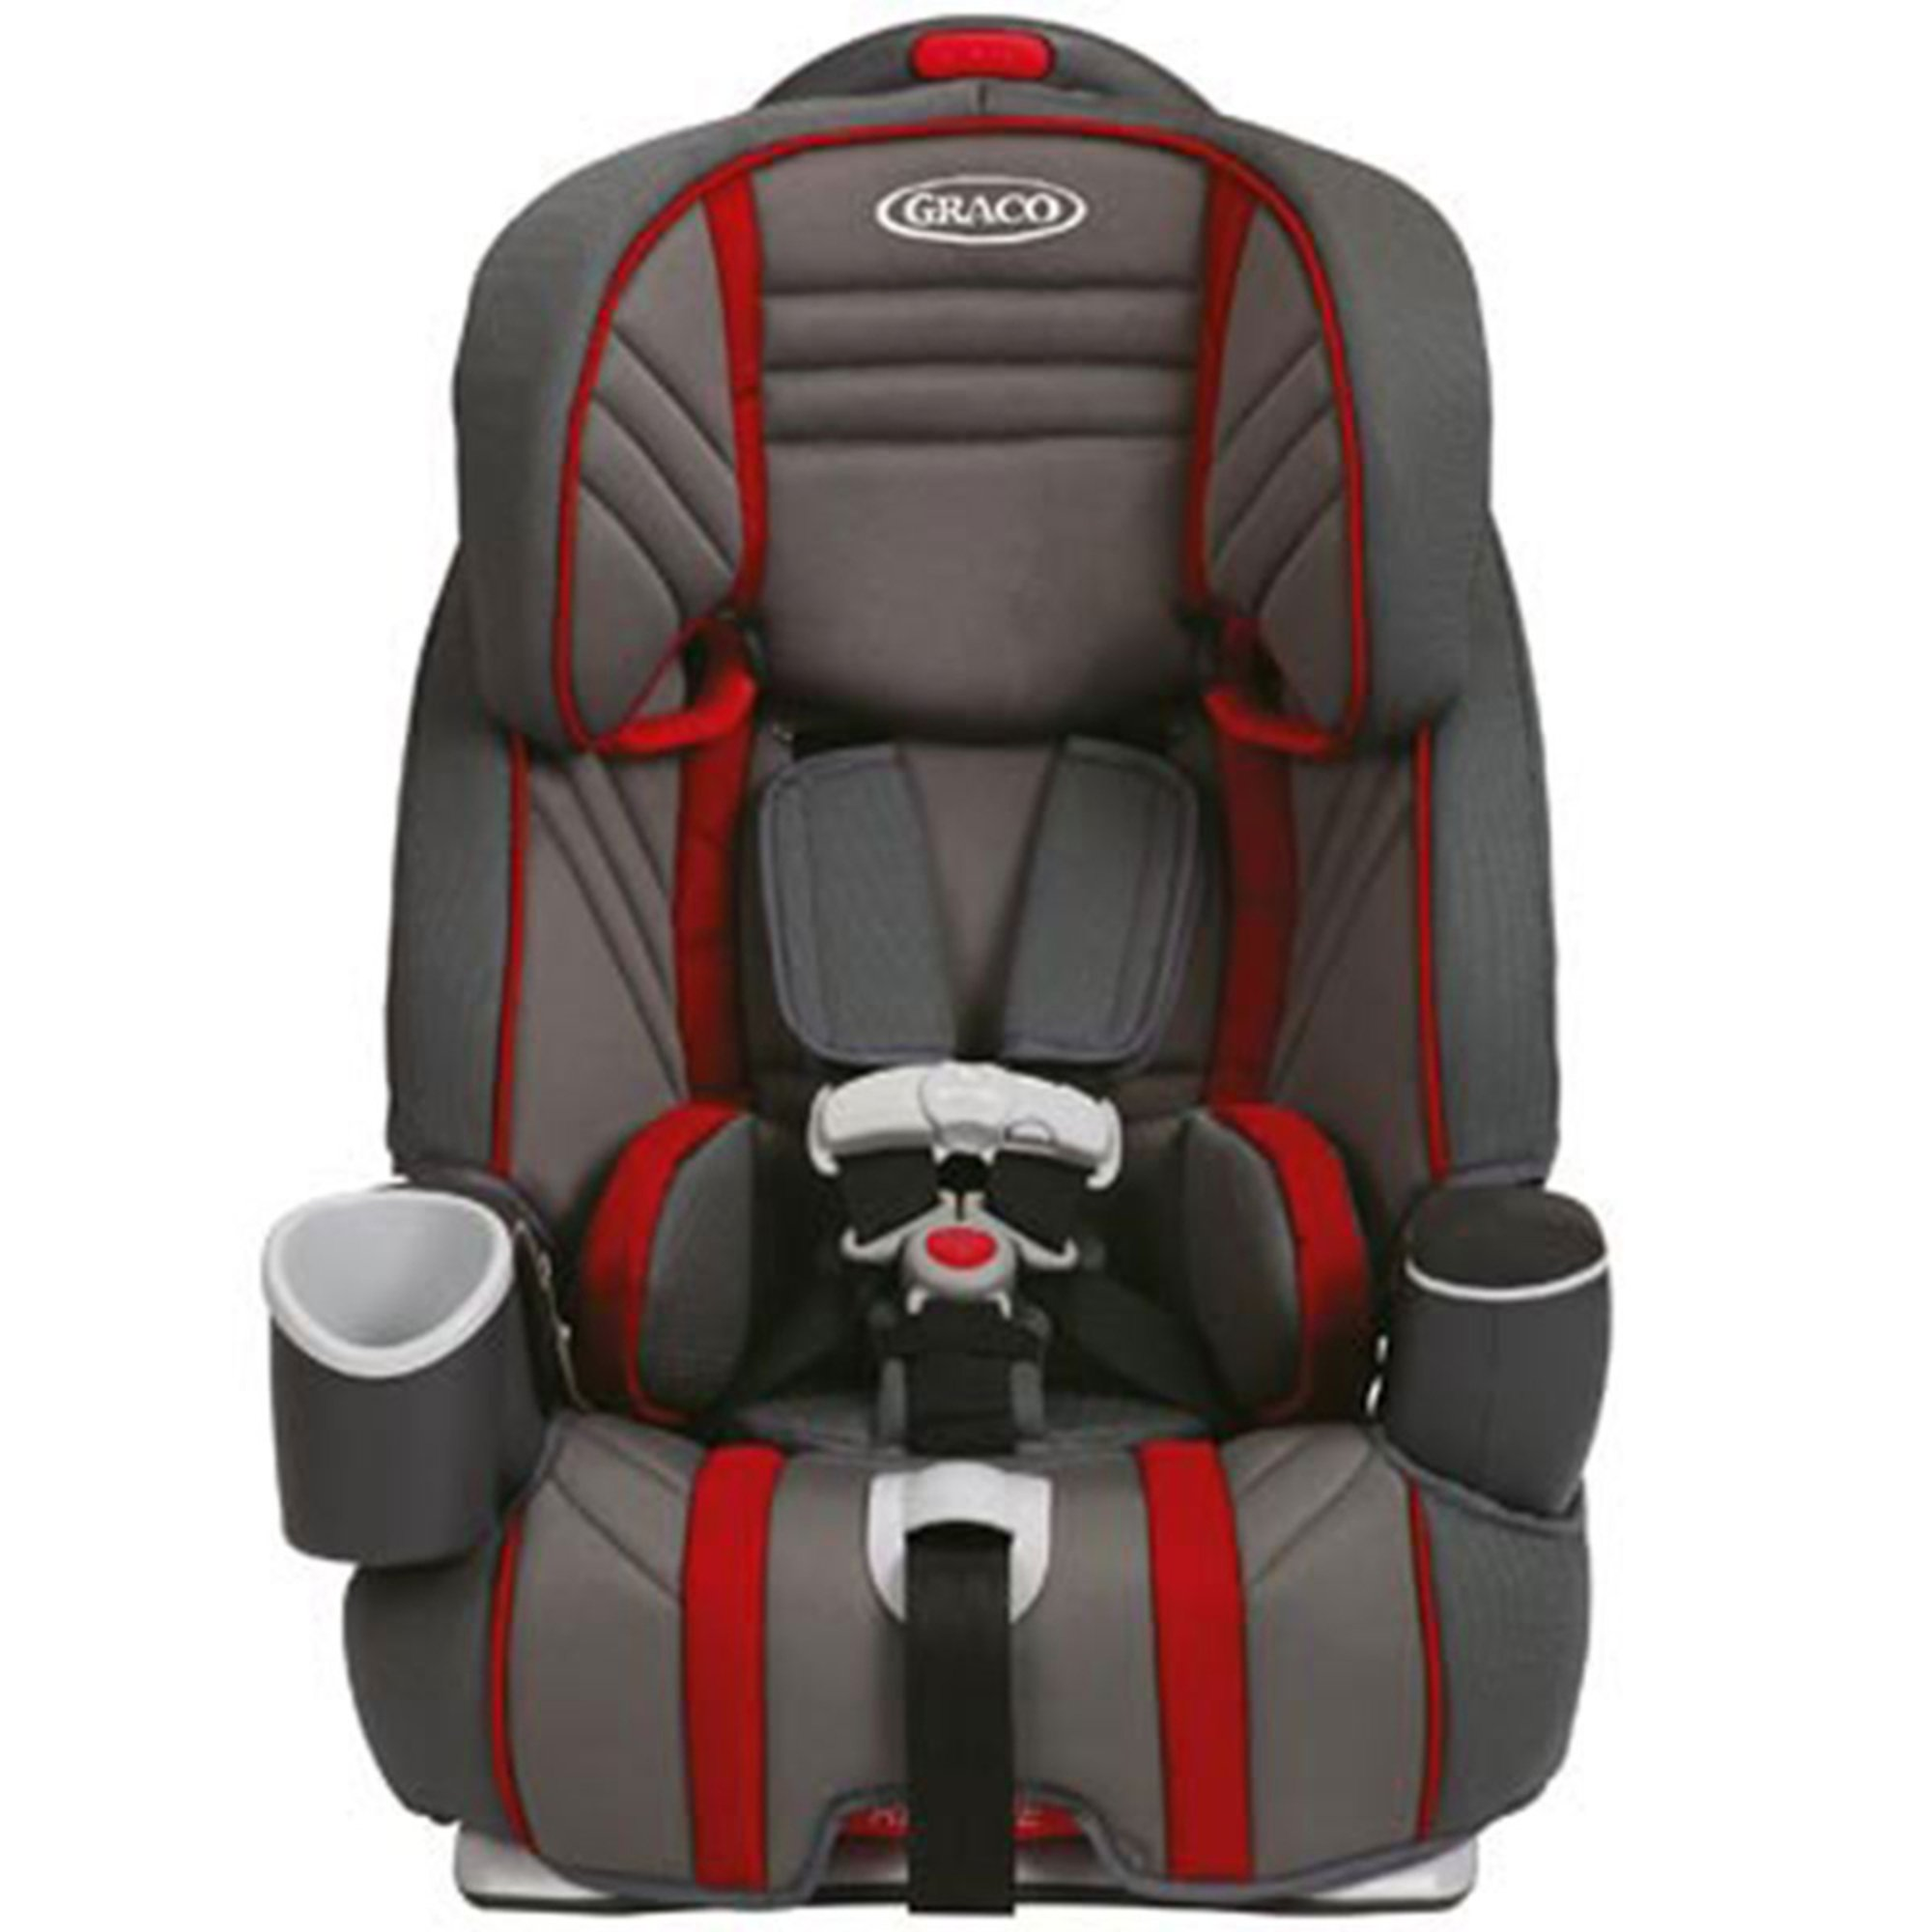 graco nautilus 3 in 1 harness booster car seat valerie baby gear all shop your navy. Black Bedroom Furniture Sets. Home Design Ideas